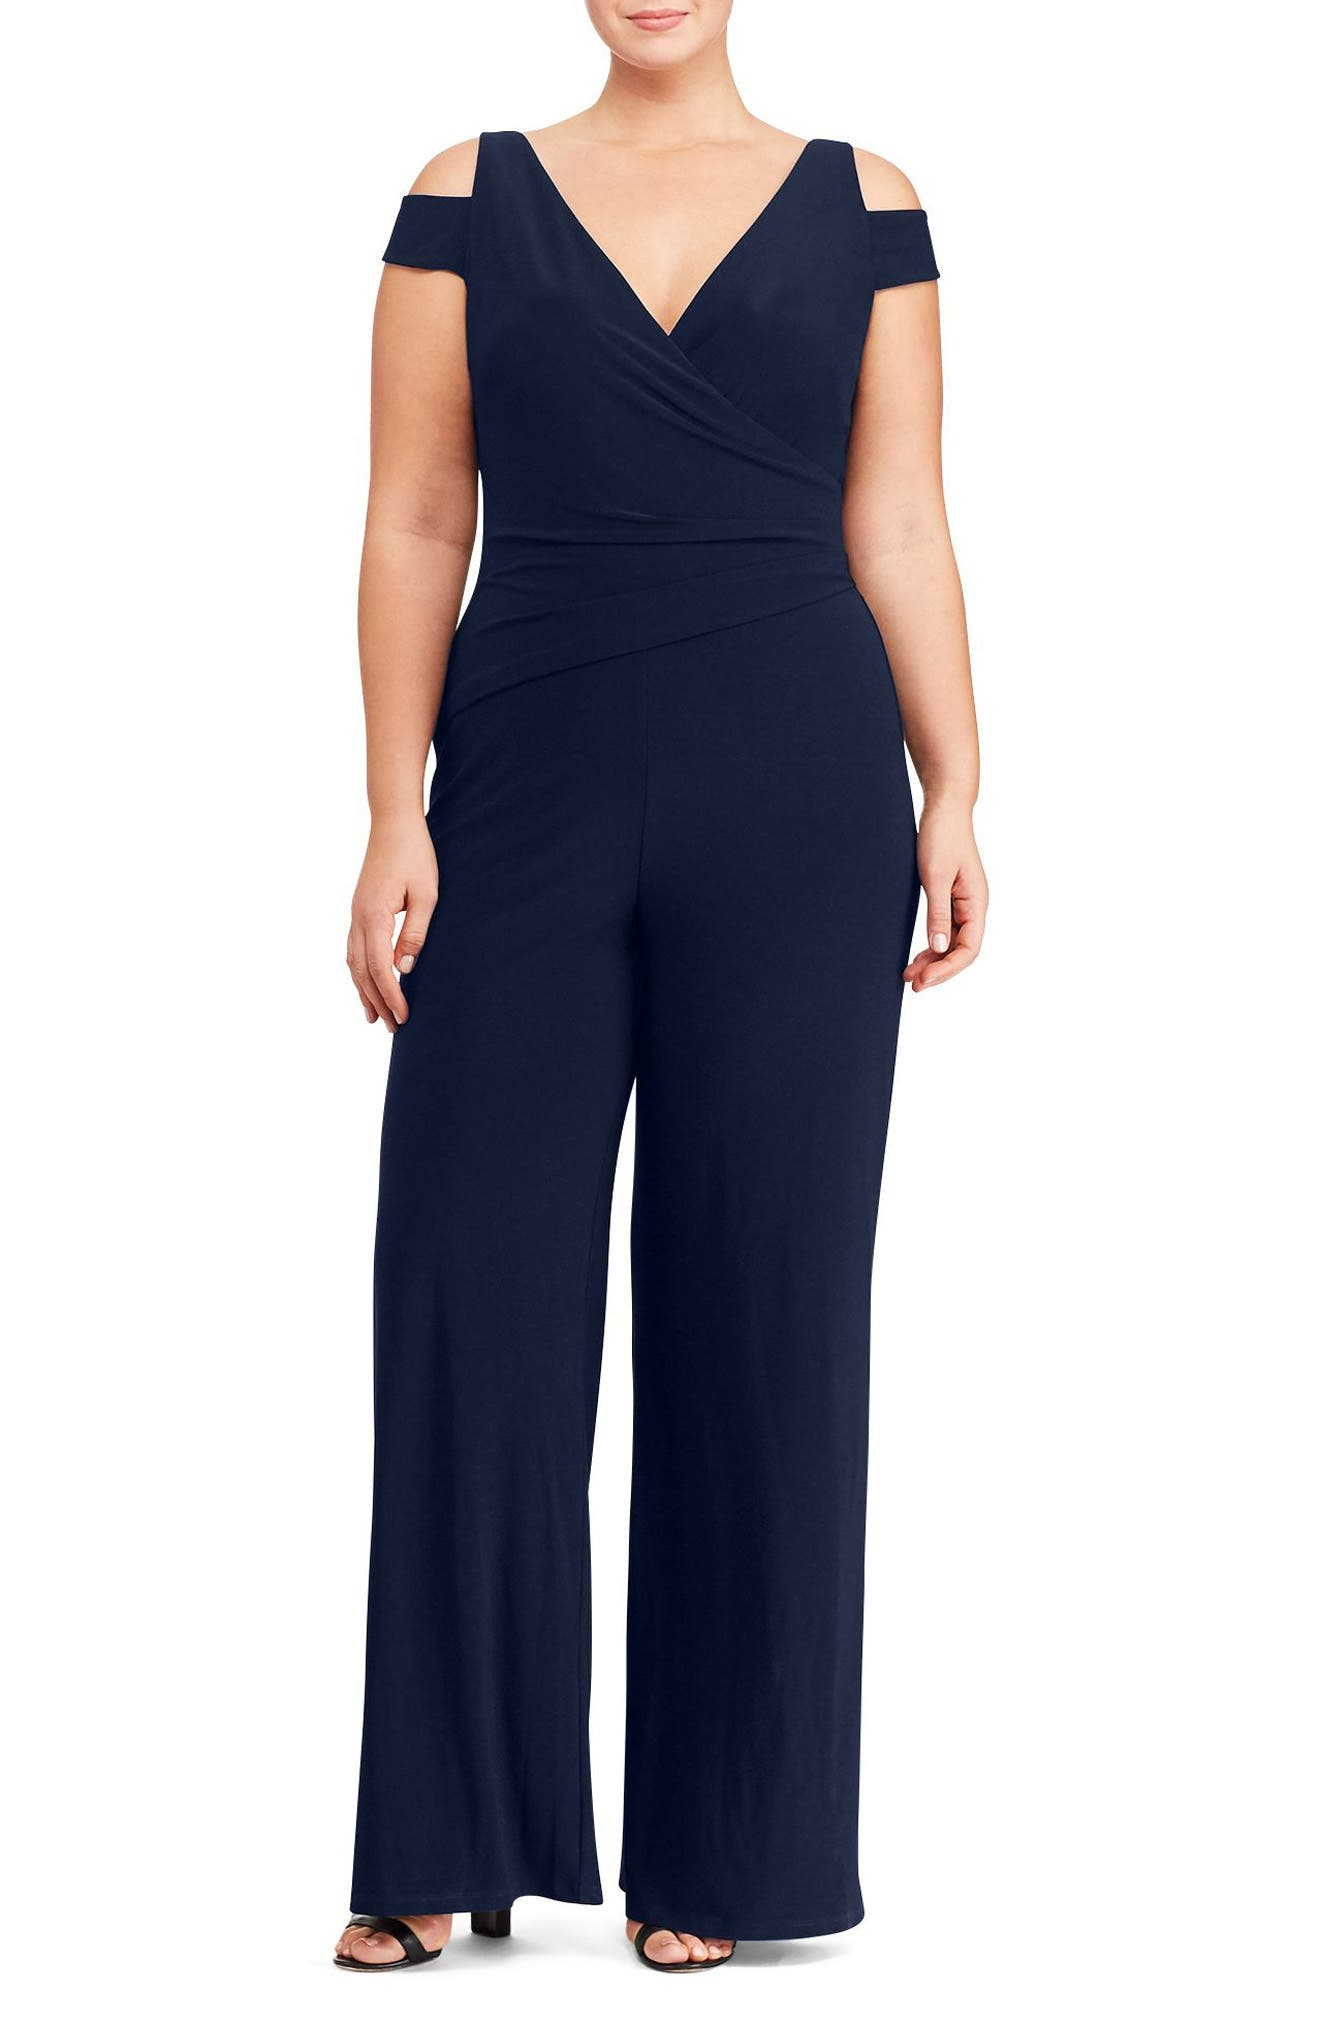 Alternate Image 1 Selected - Lauren Ralph Lauren Cold Shoulder Jersey Jumpsuit (Plus Size)